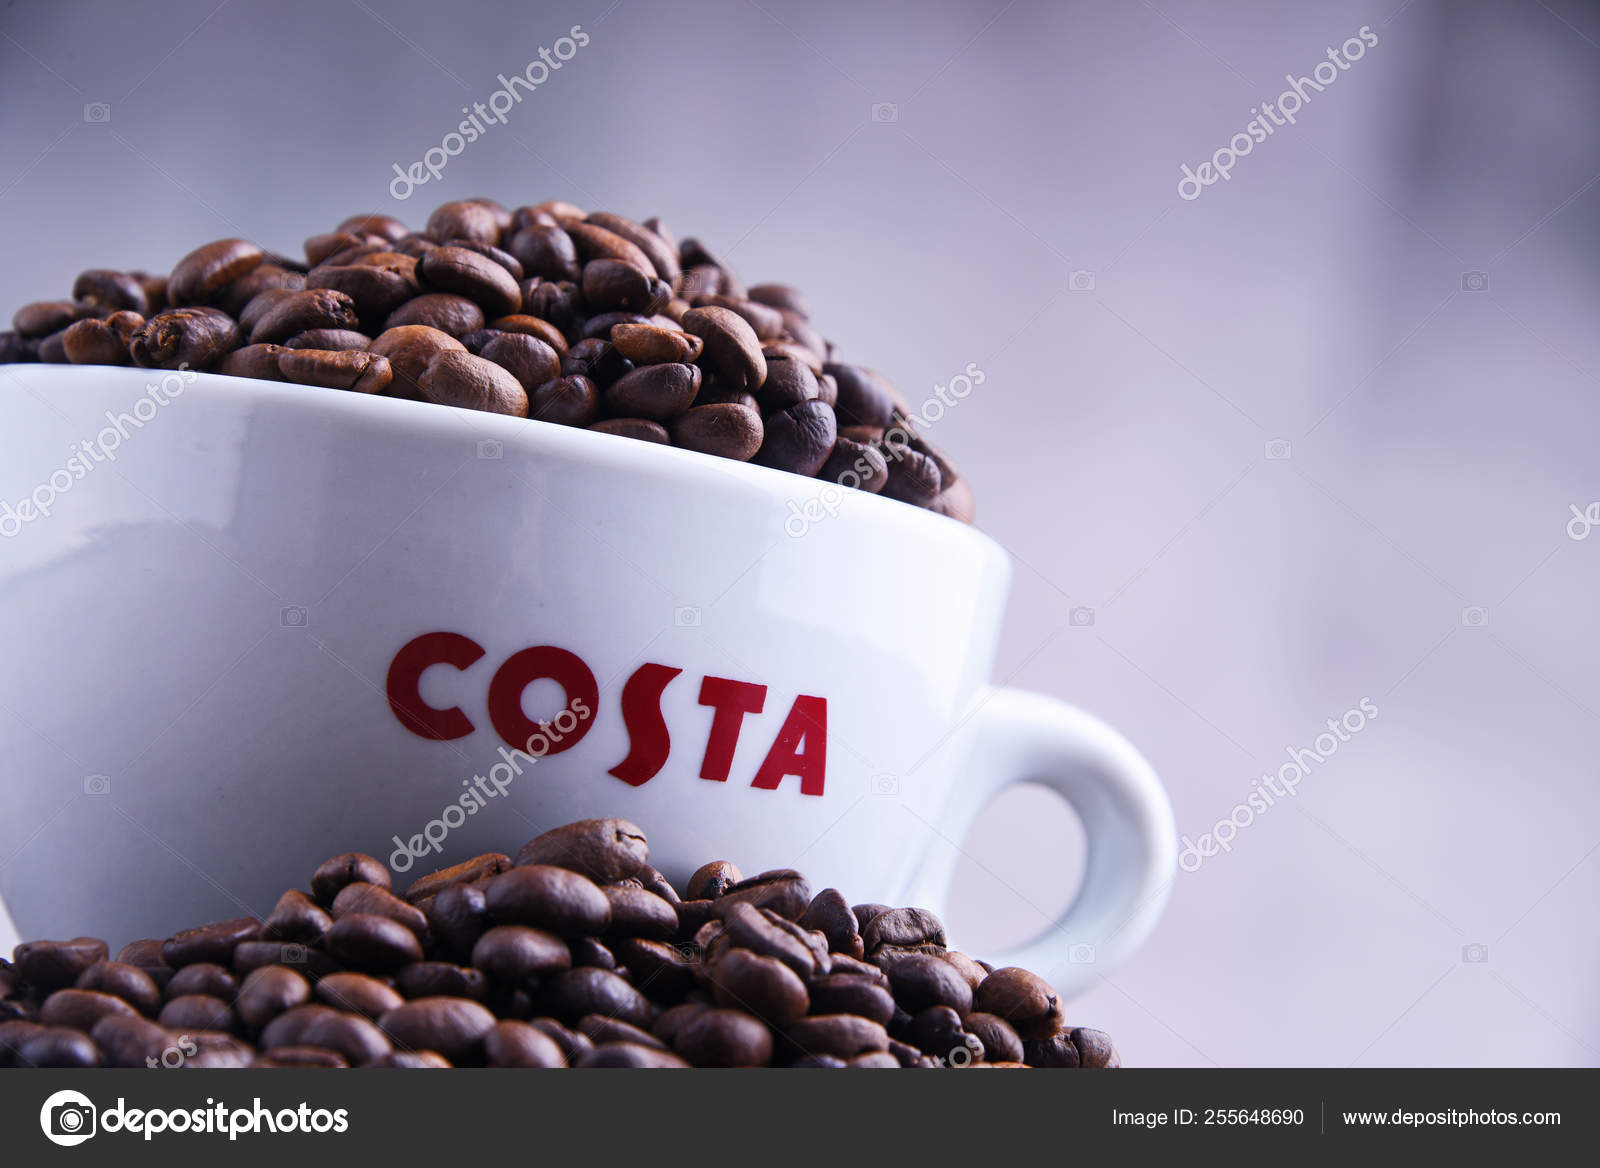 cup of costa coffee